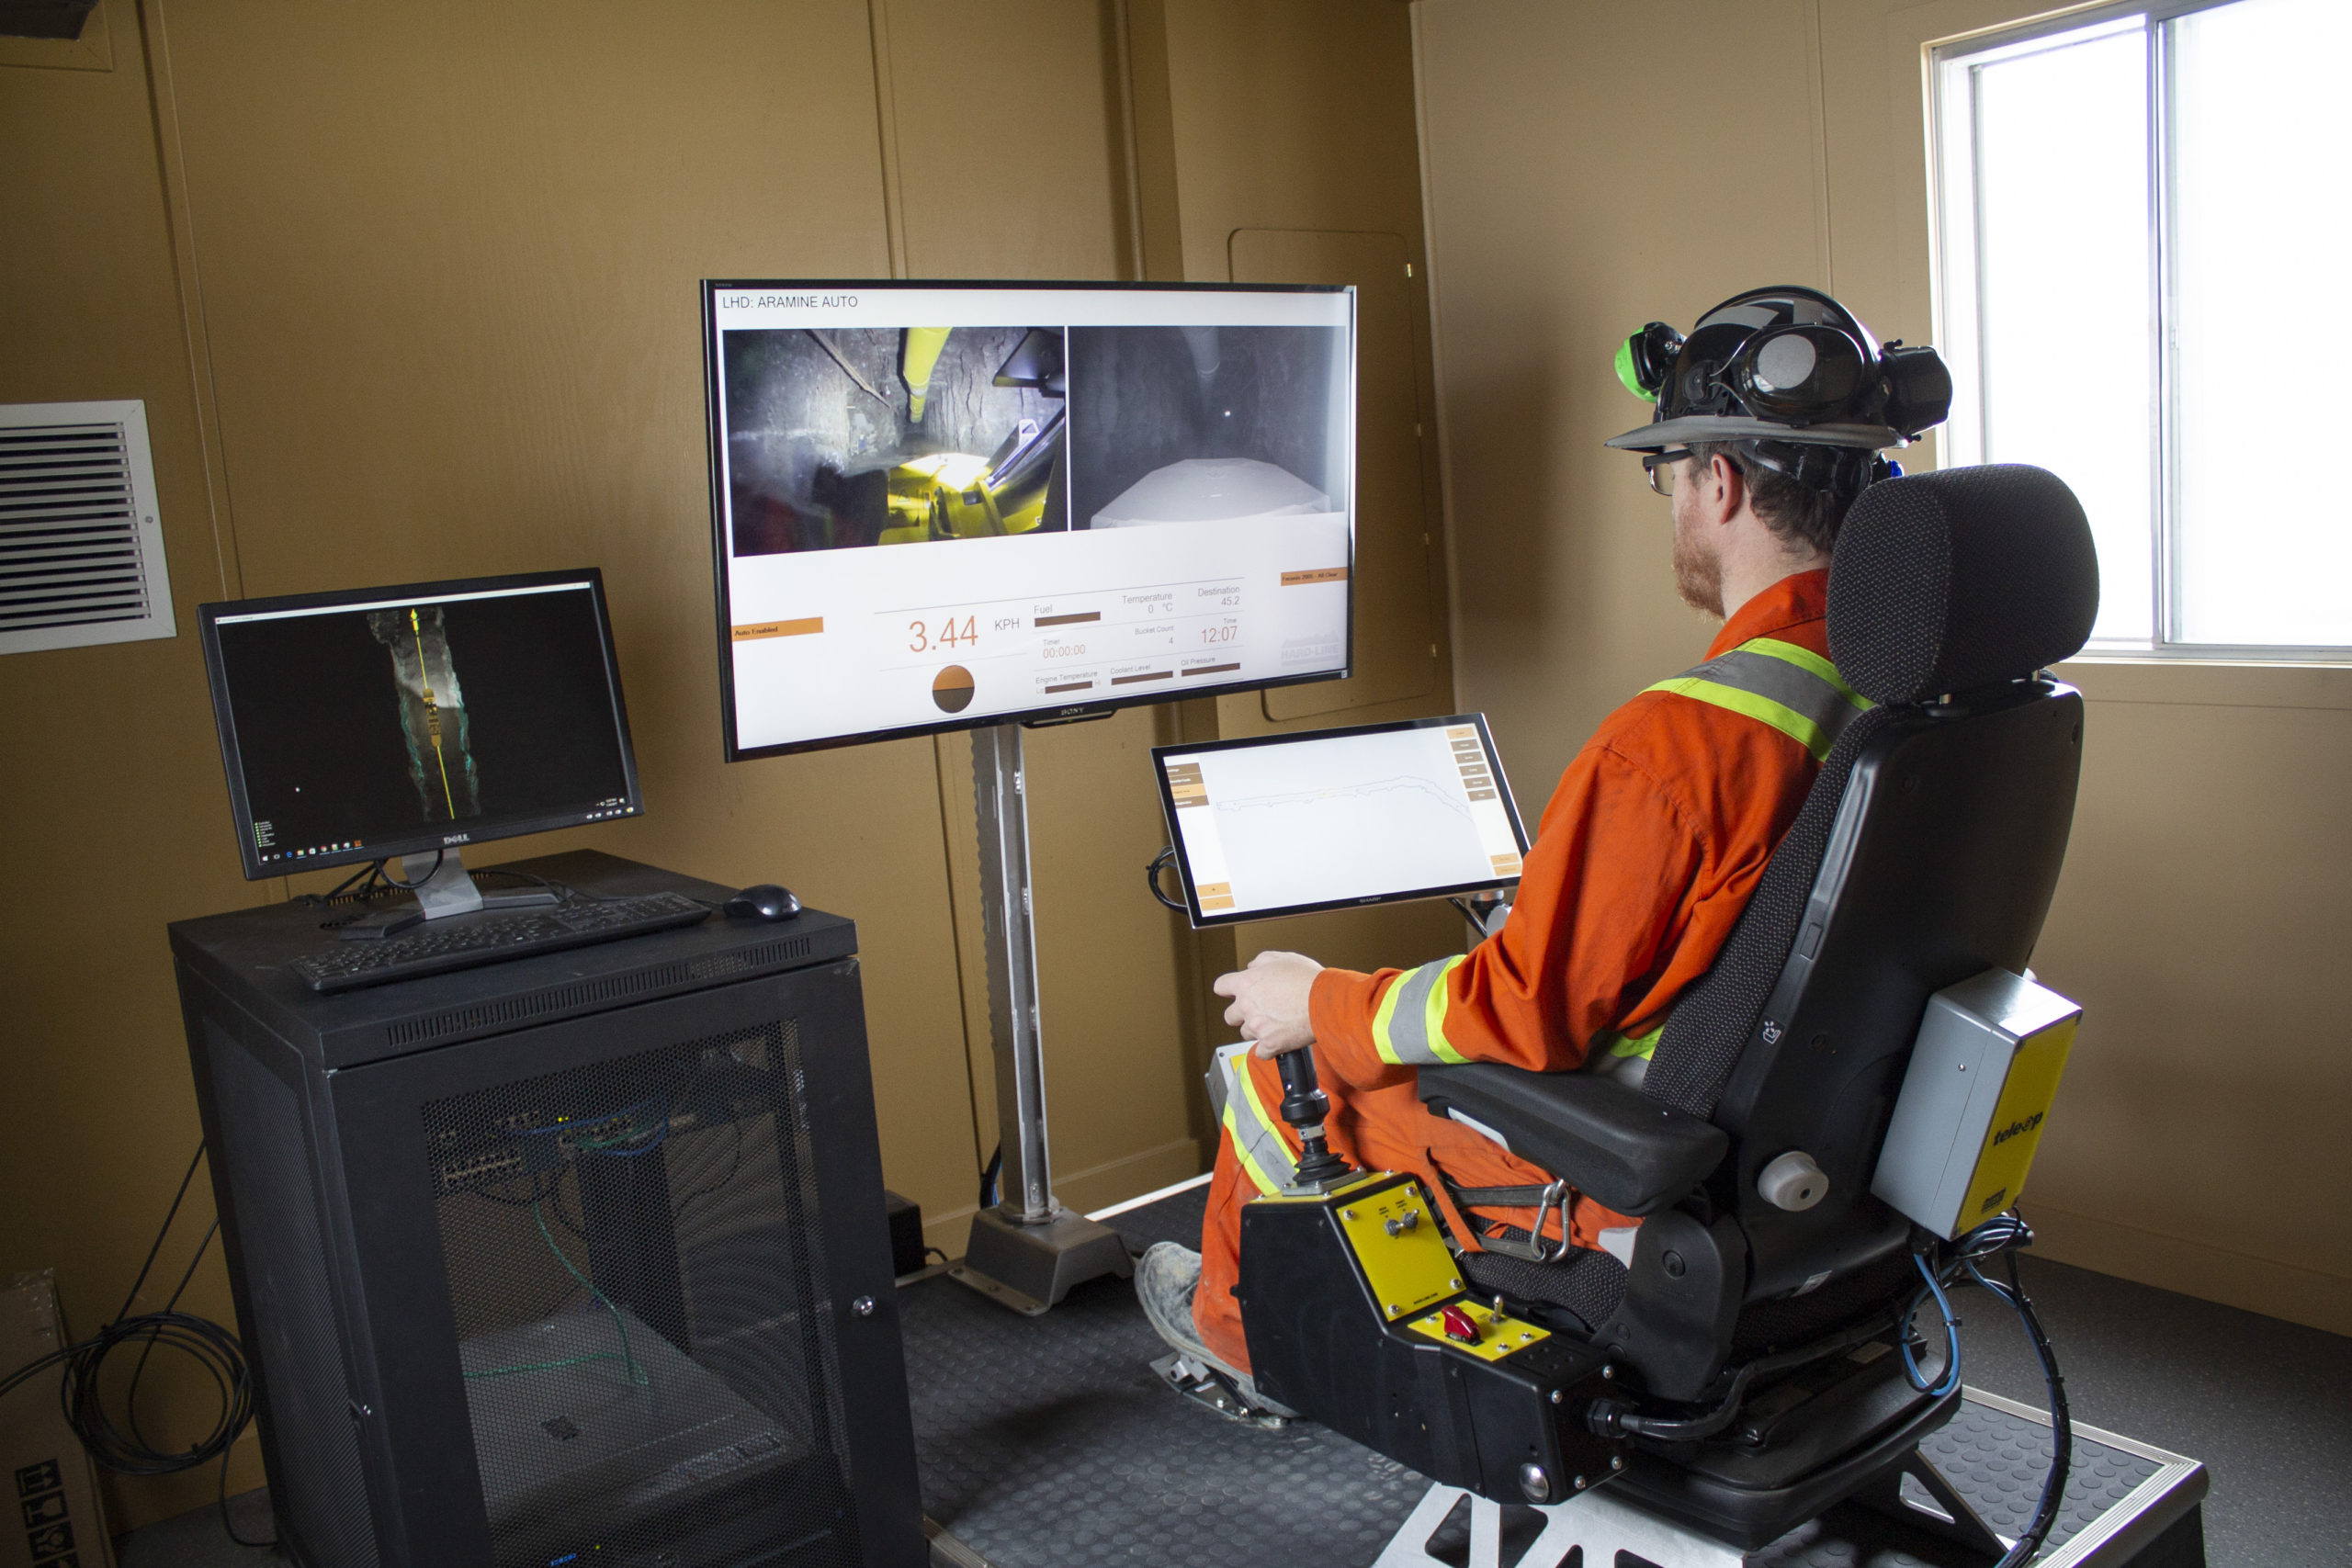 TeleOp Auto being used at NORCAT